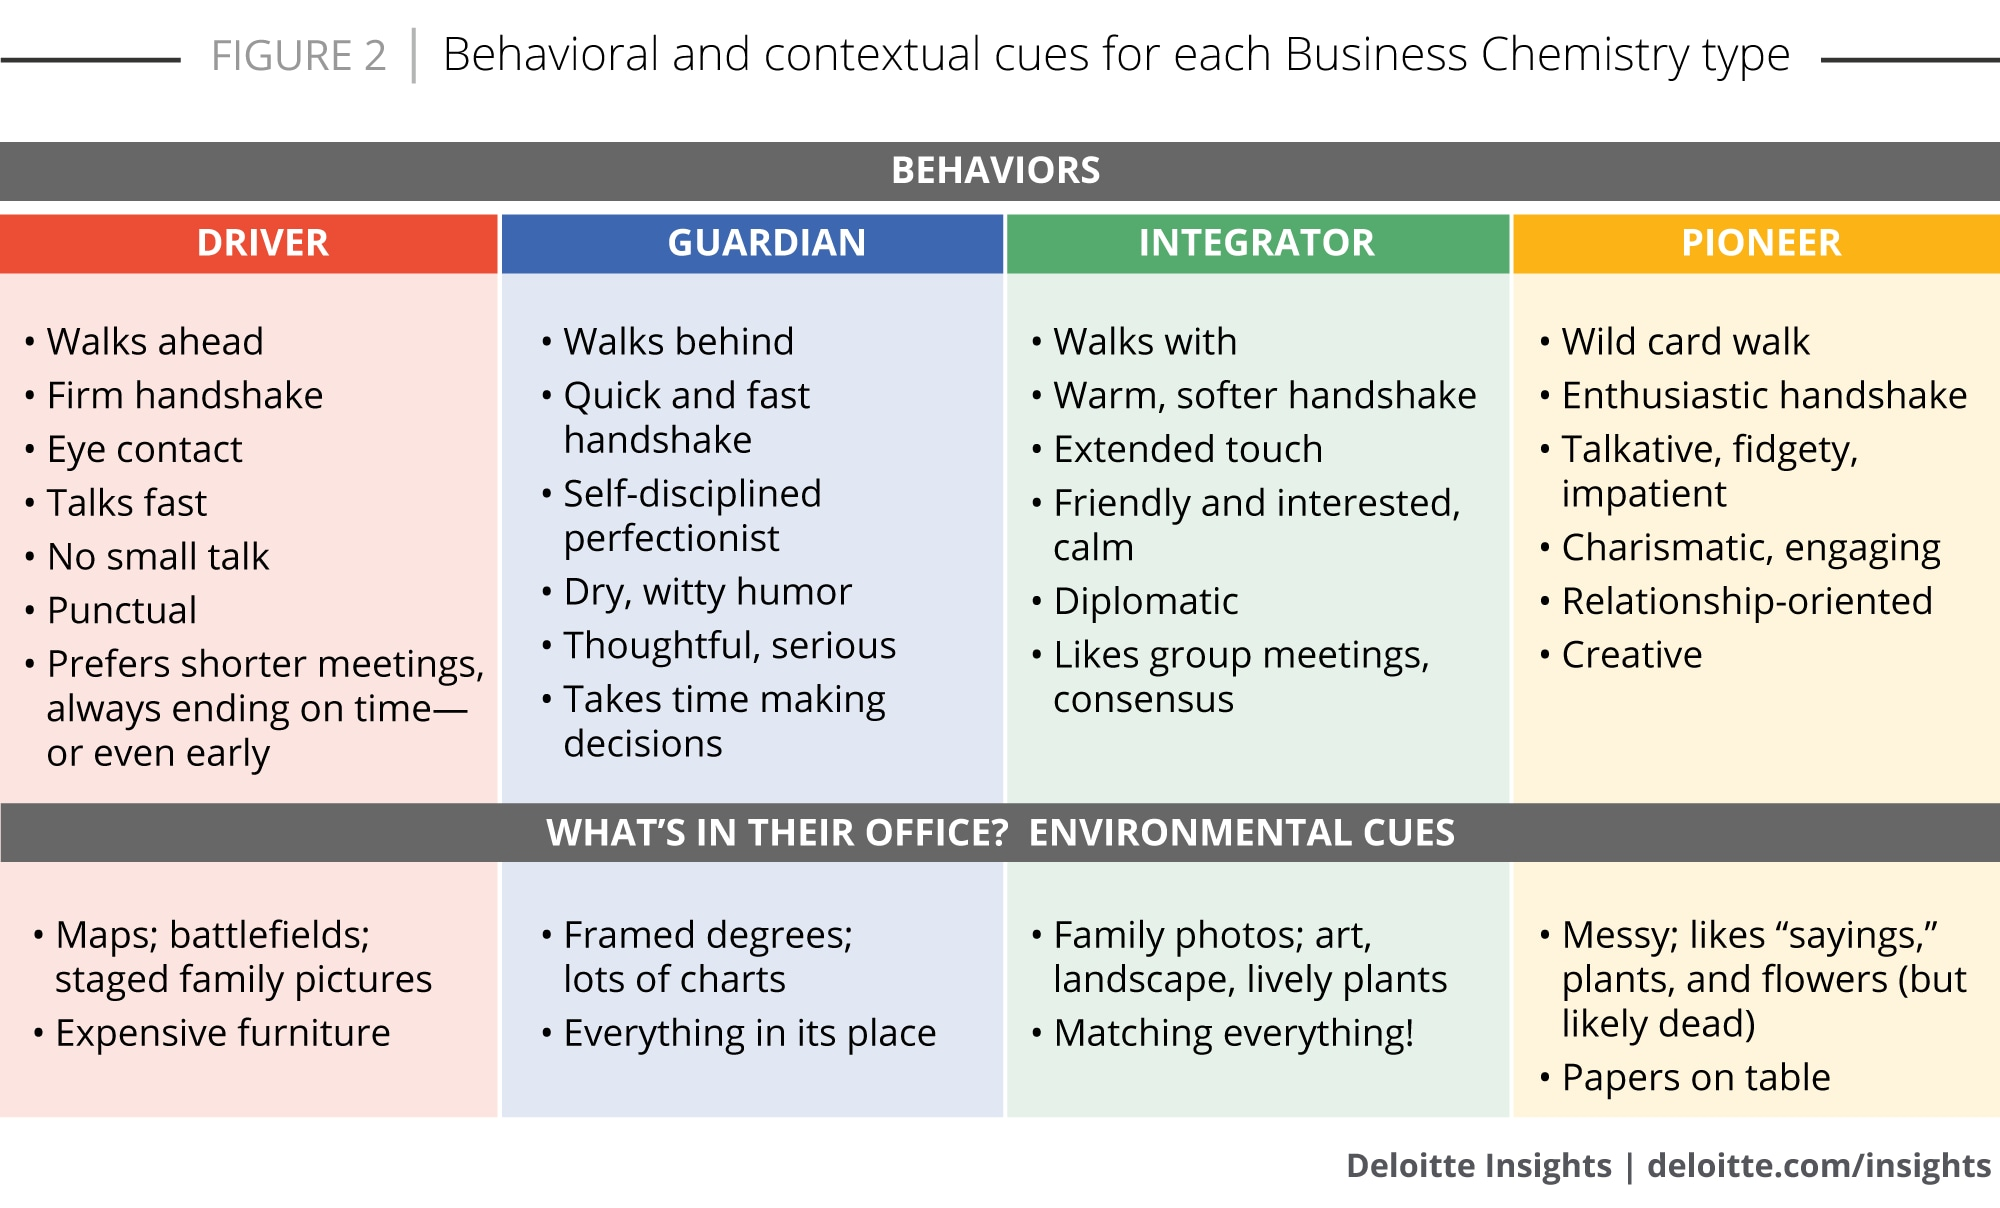 Behavioral and contextual cues for each Business Chemistry type